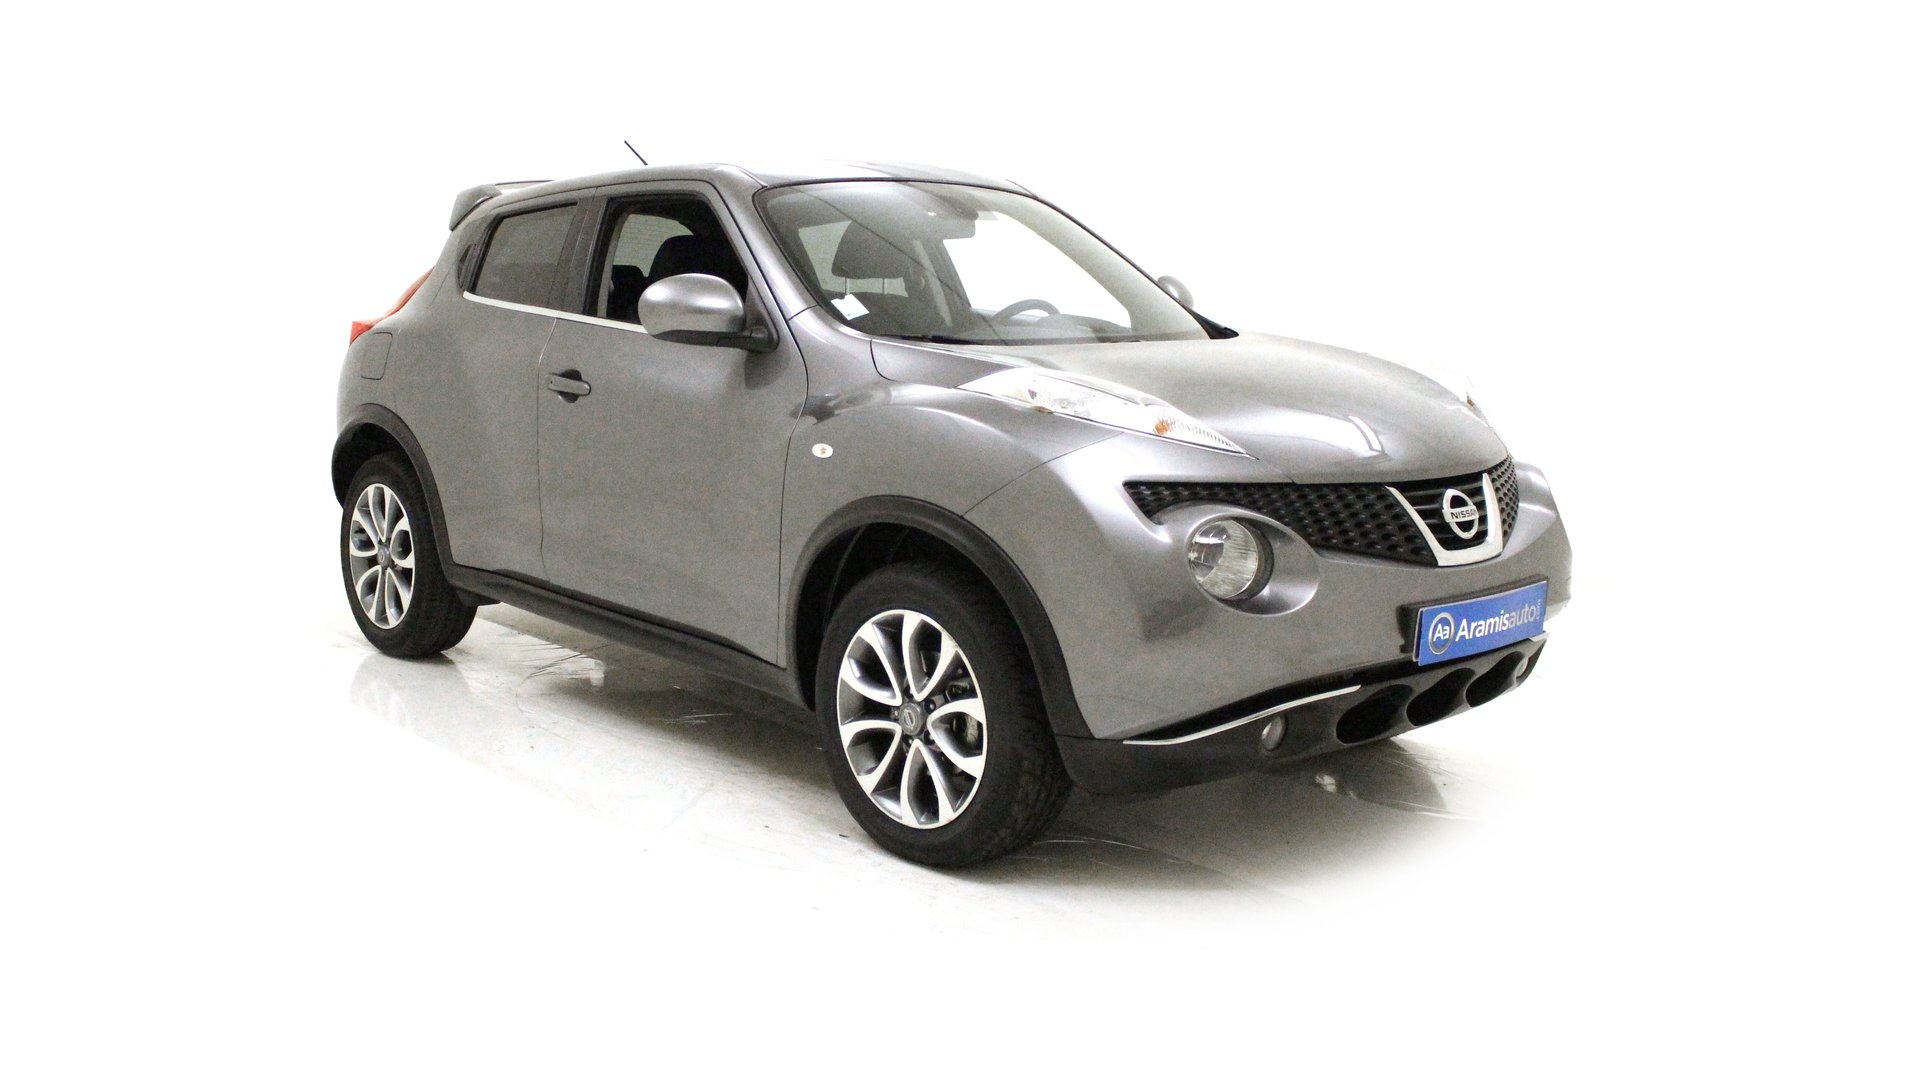 nissan juke 4x2 et suv 5 portes diesel 1 5 dci 110 fap bo te manuelle finition. Black Bedroom Furniture Sets. Home Design Ideas